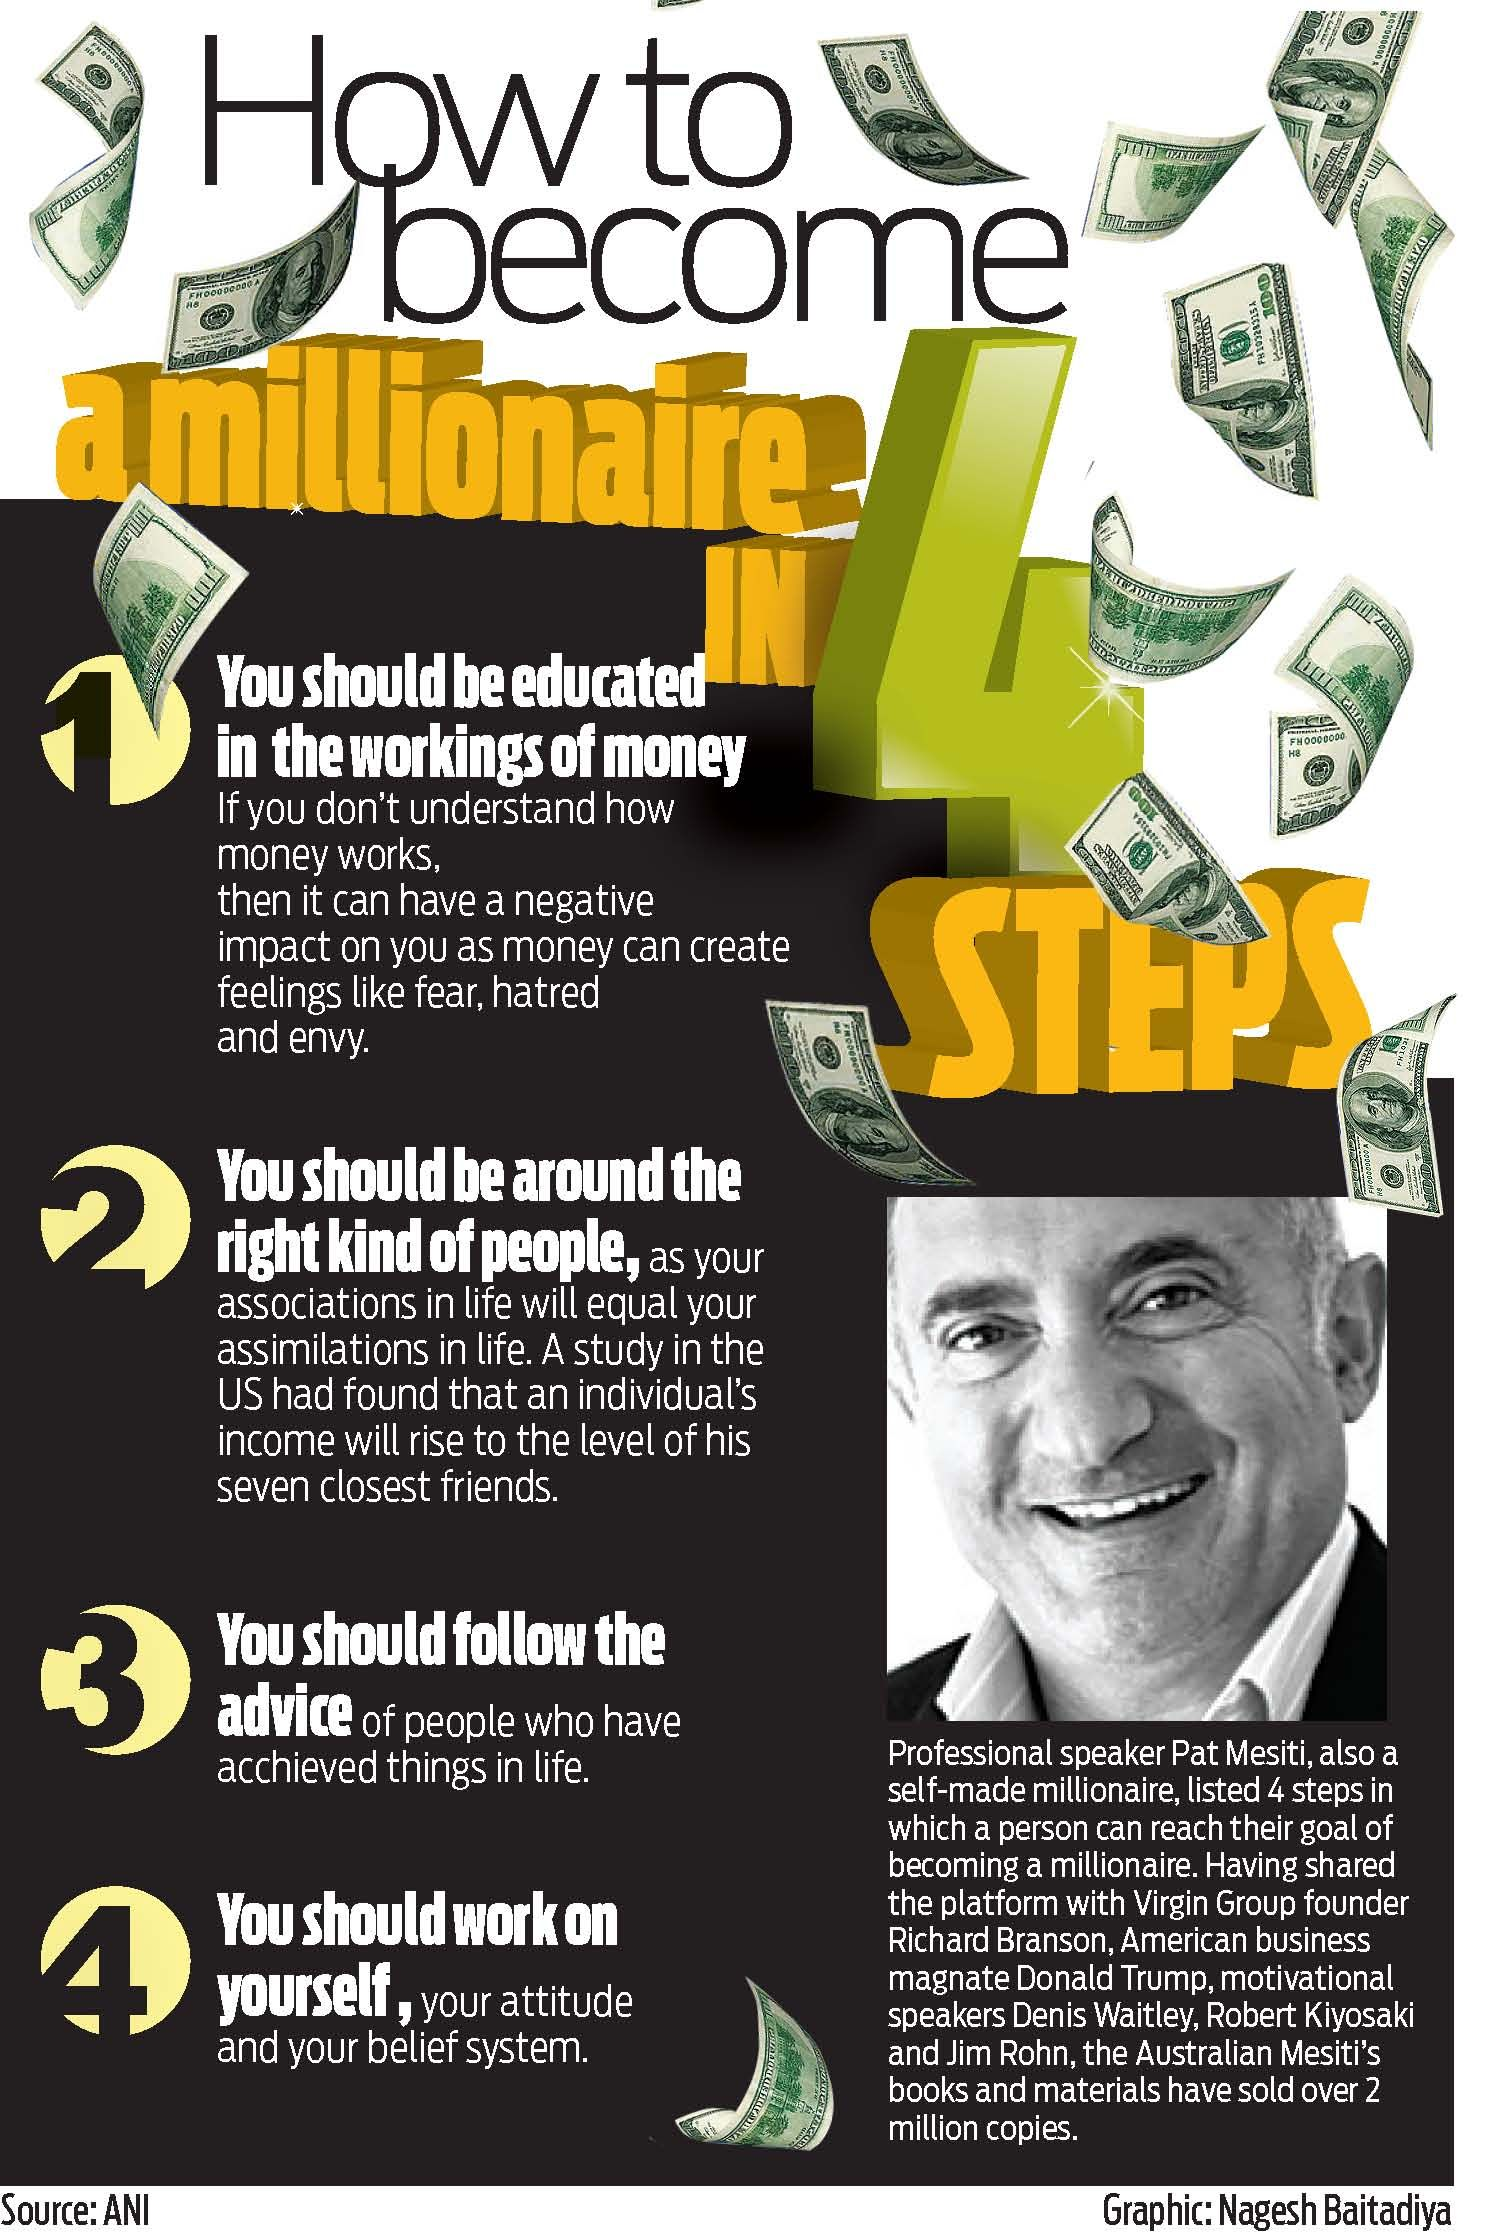 How to become a millionaire in 4 steps